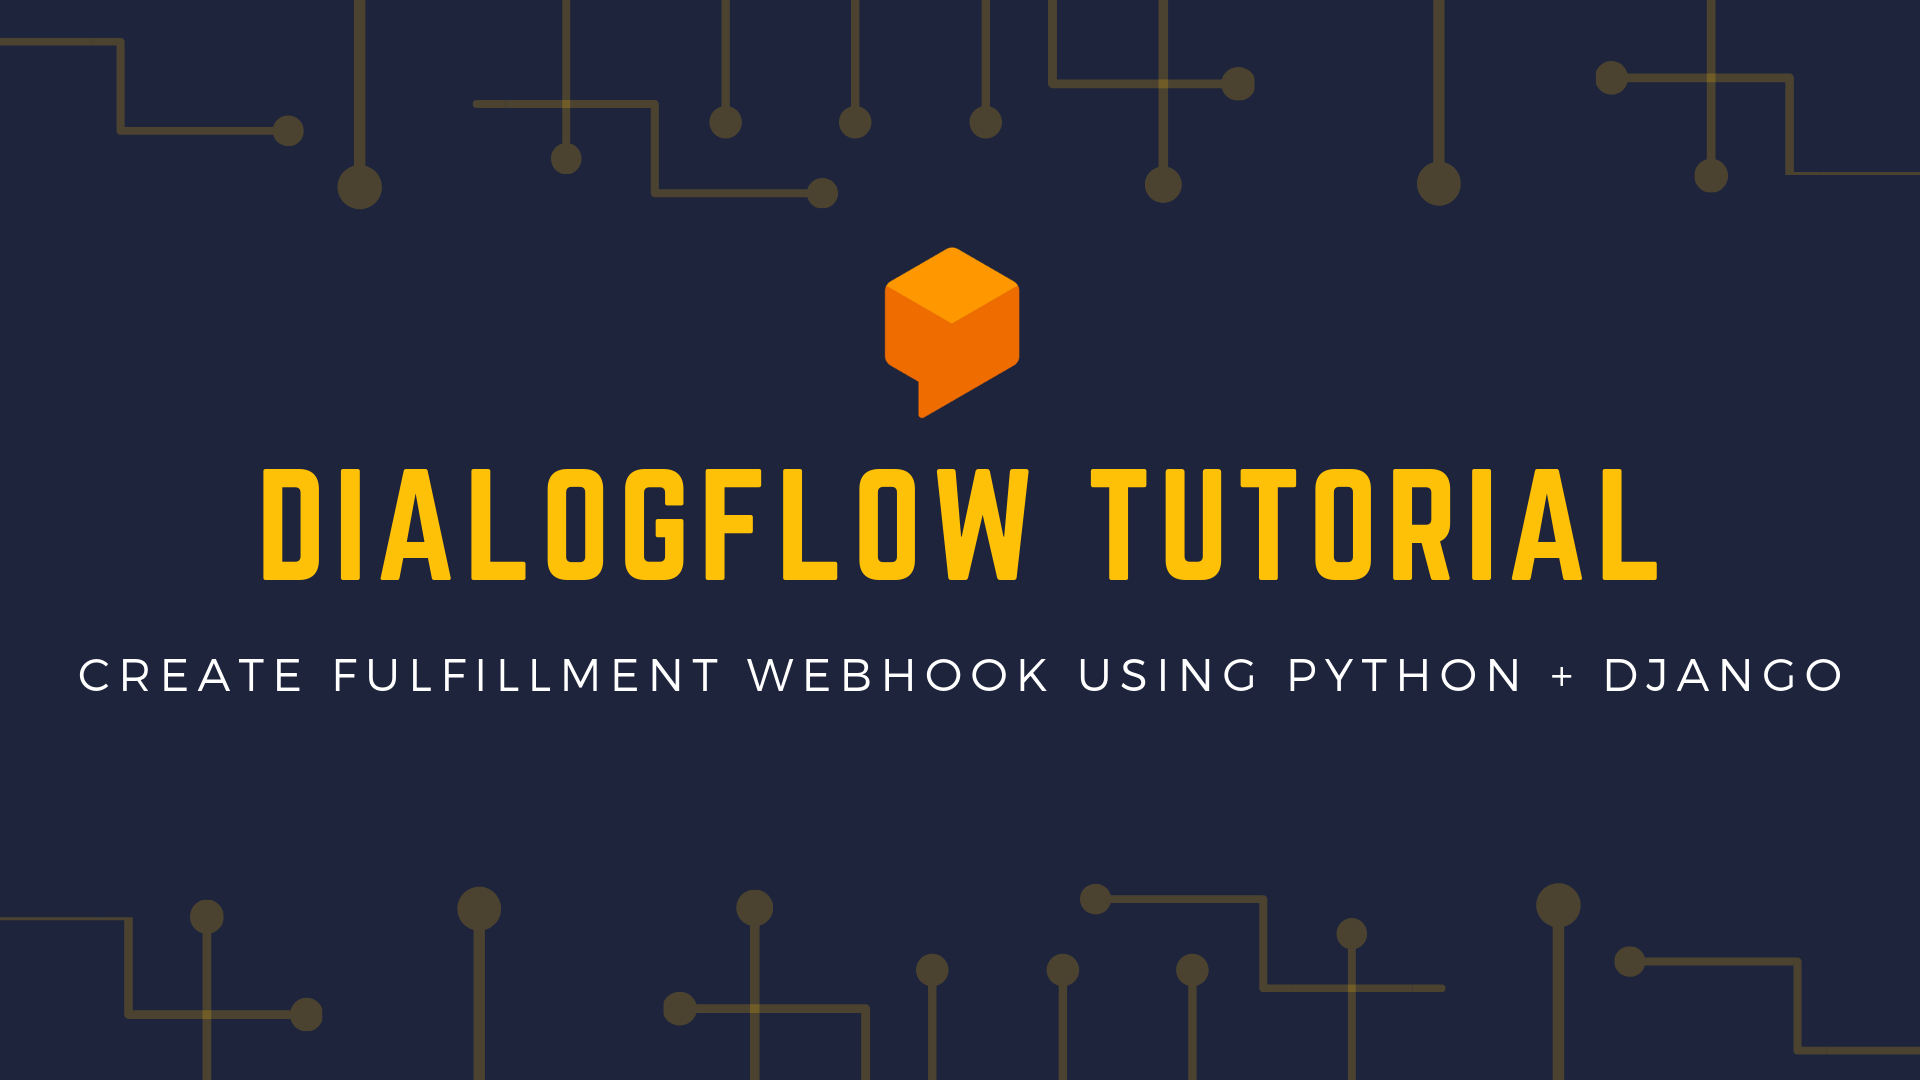 Dialogflow Tutorial: Create Fulfillment Webhook Using Python